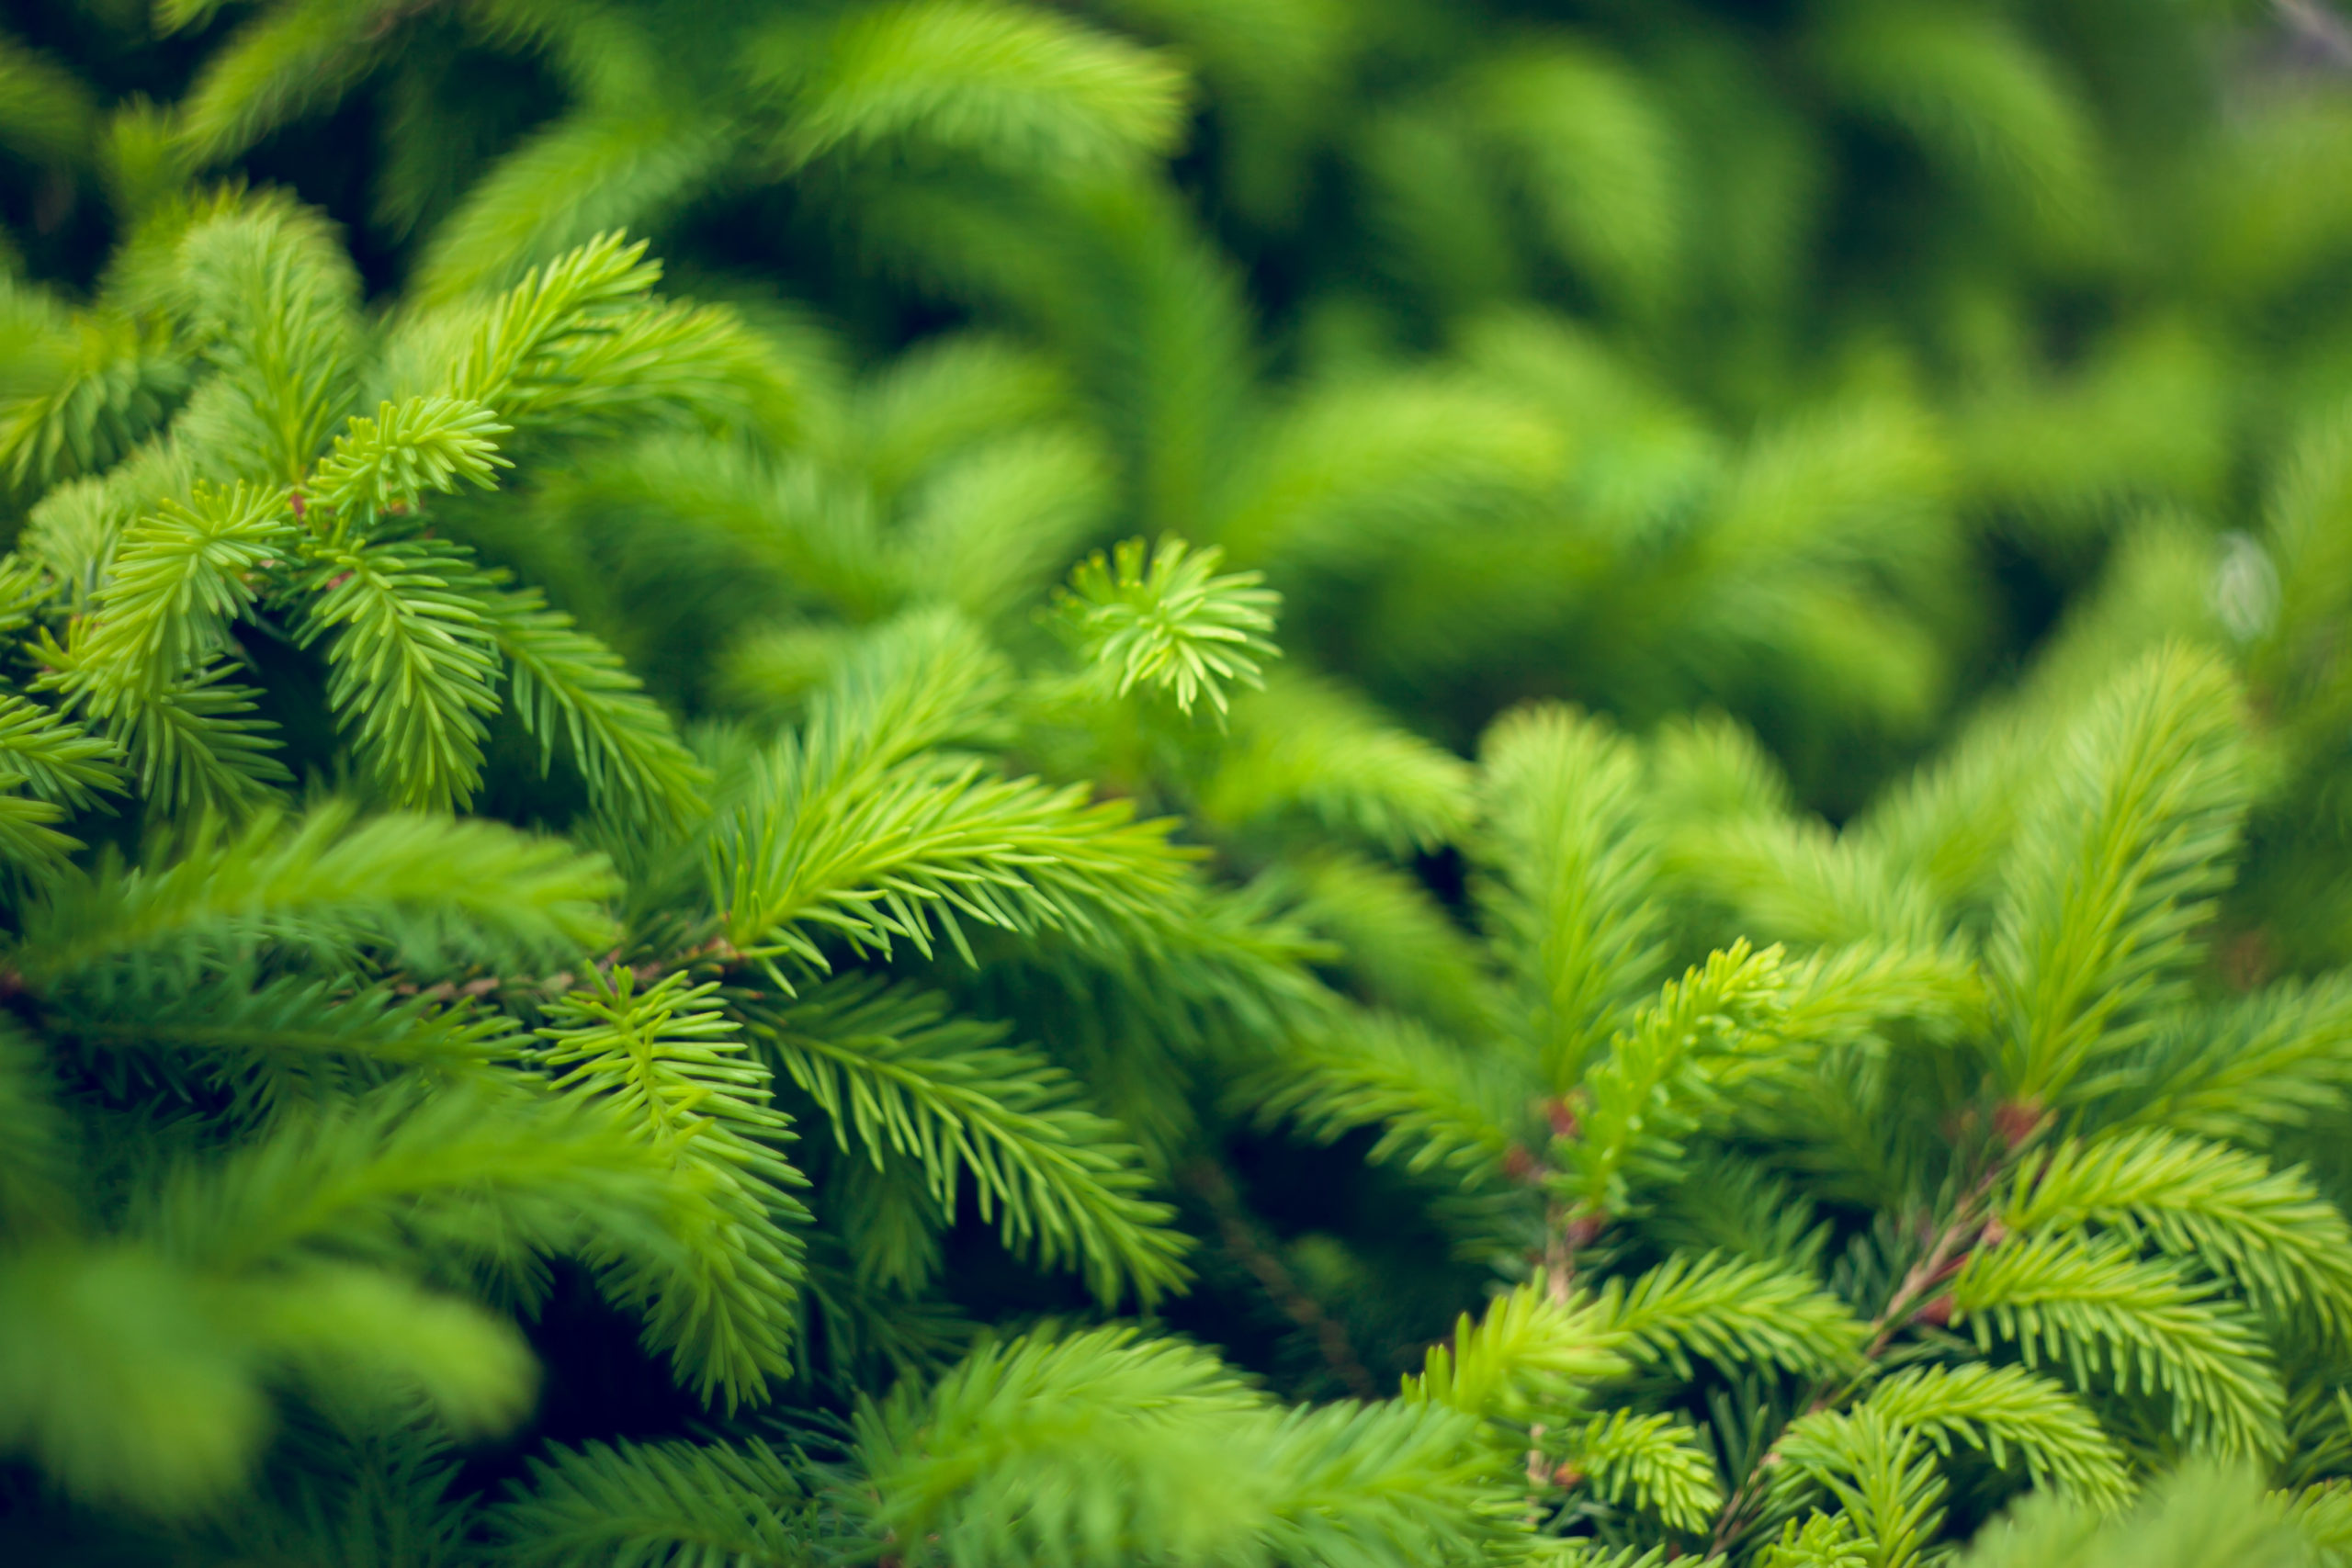 Norway Spruce close up shutterstock_1801613548